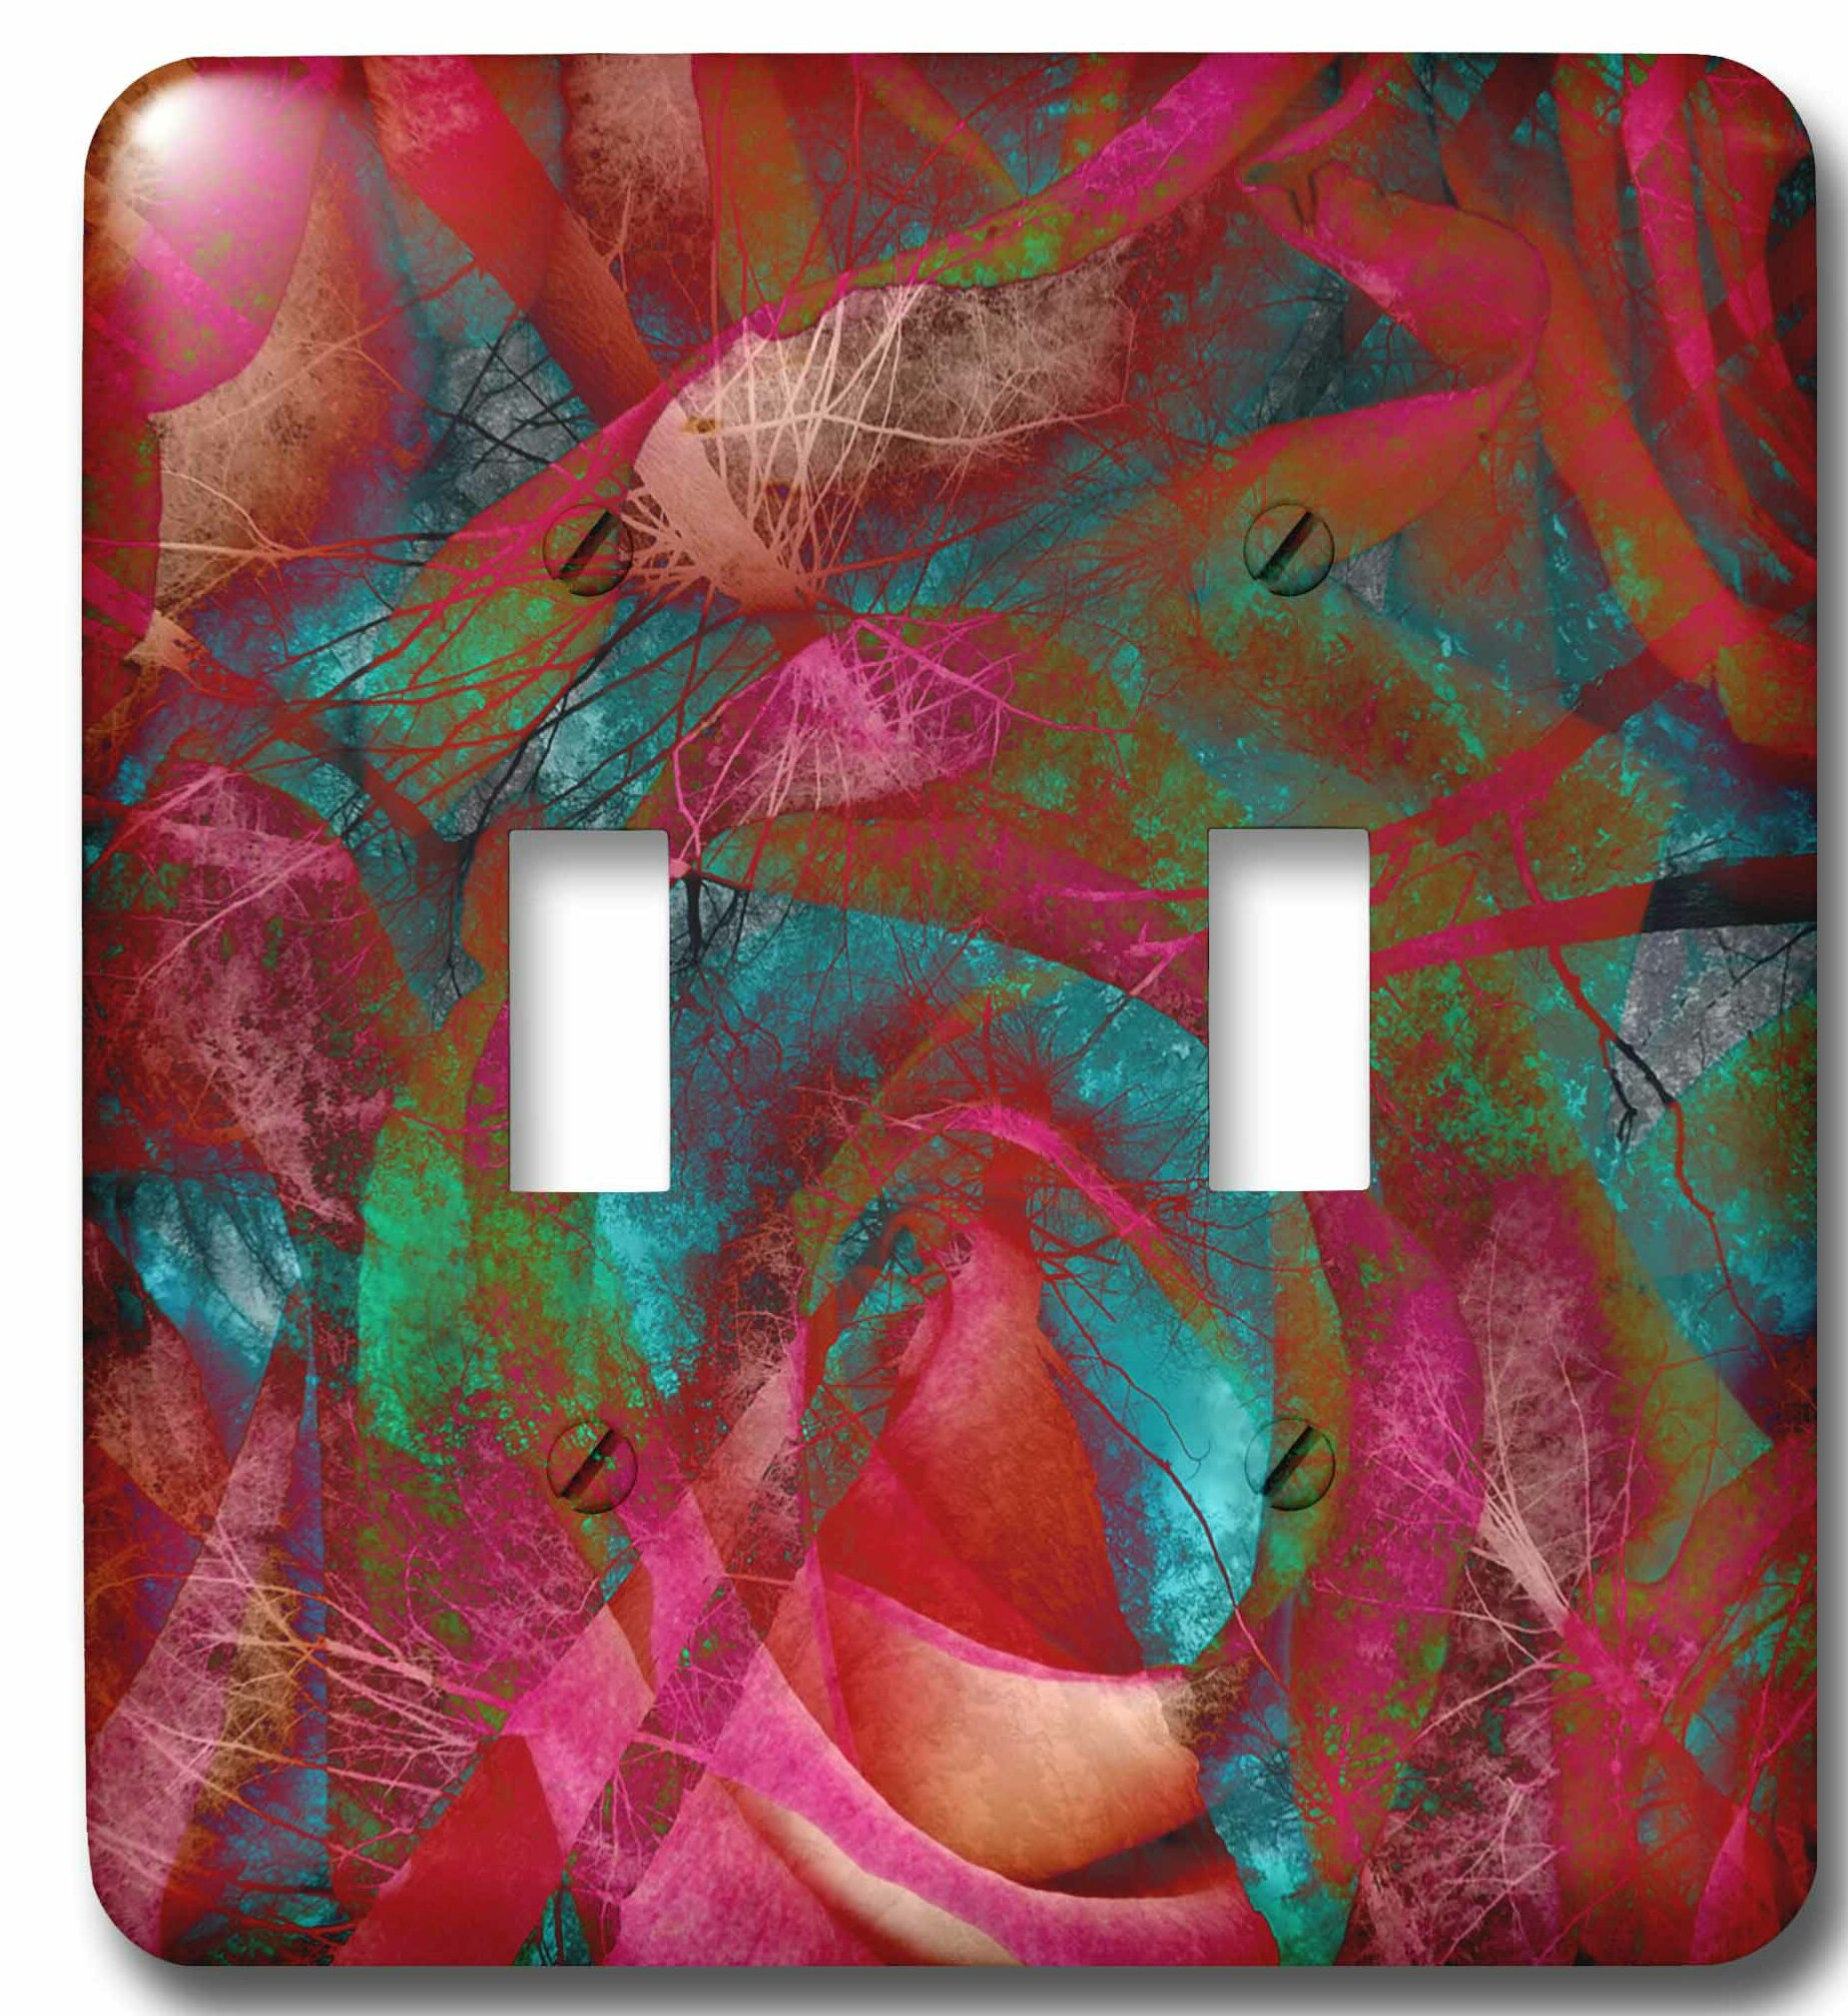 3drose Usa Tall Trees Roses Artistic Abstract 2 Gang Toggle Light Switch Wall Plate Wayfair